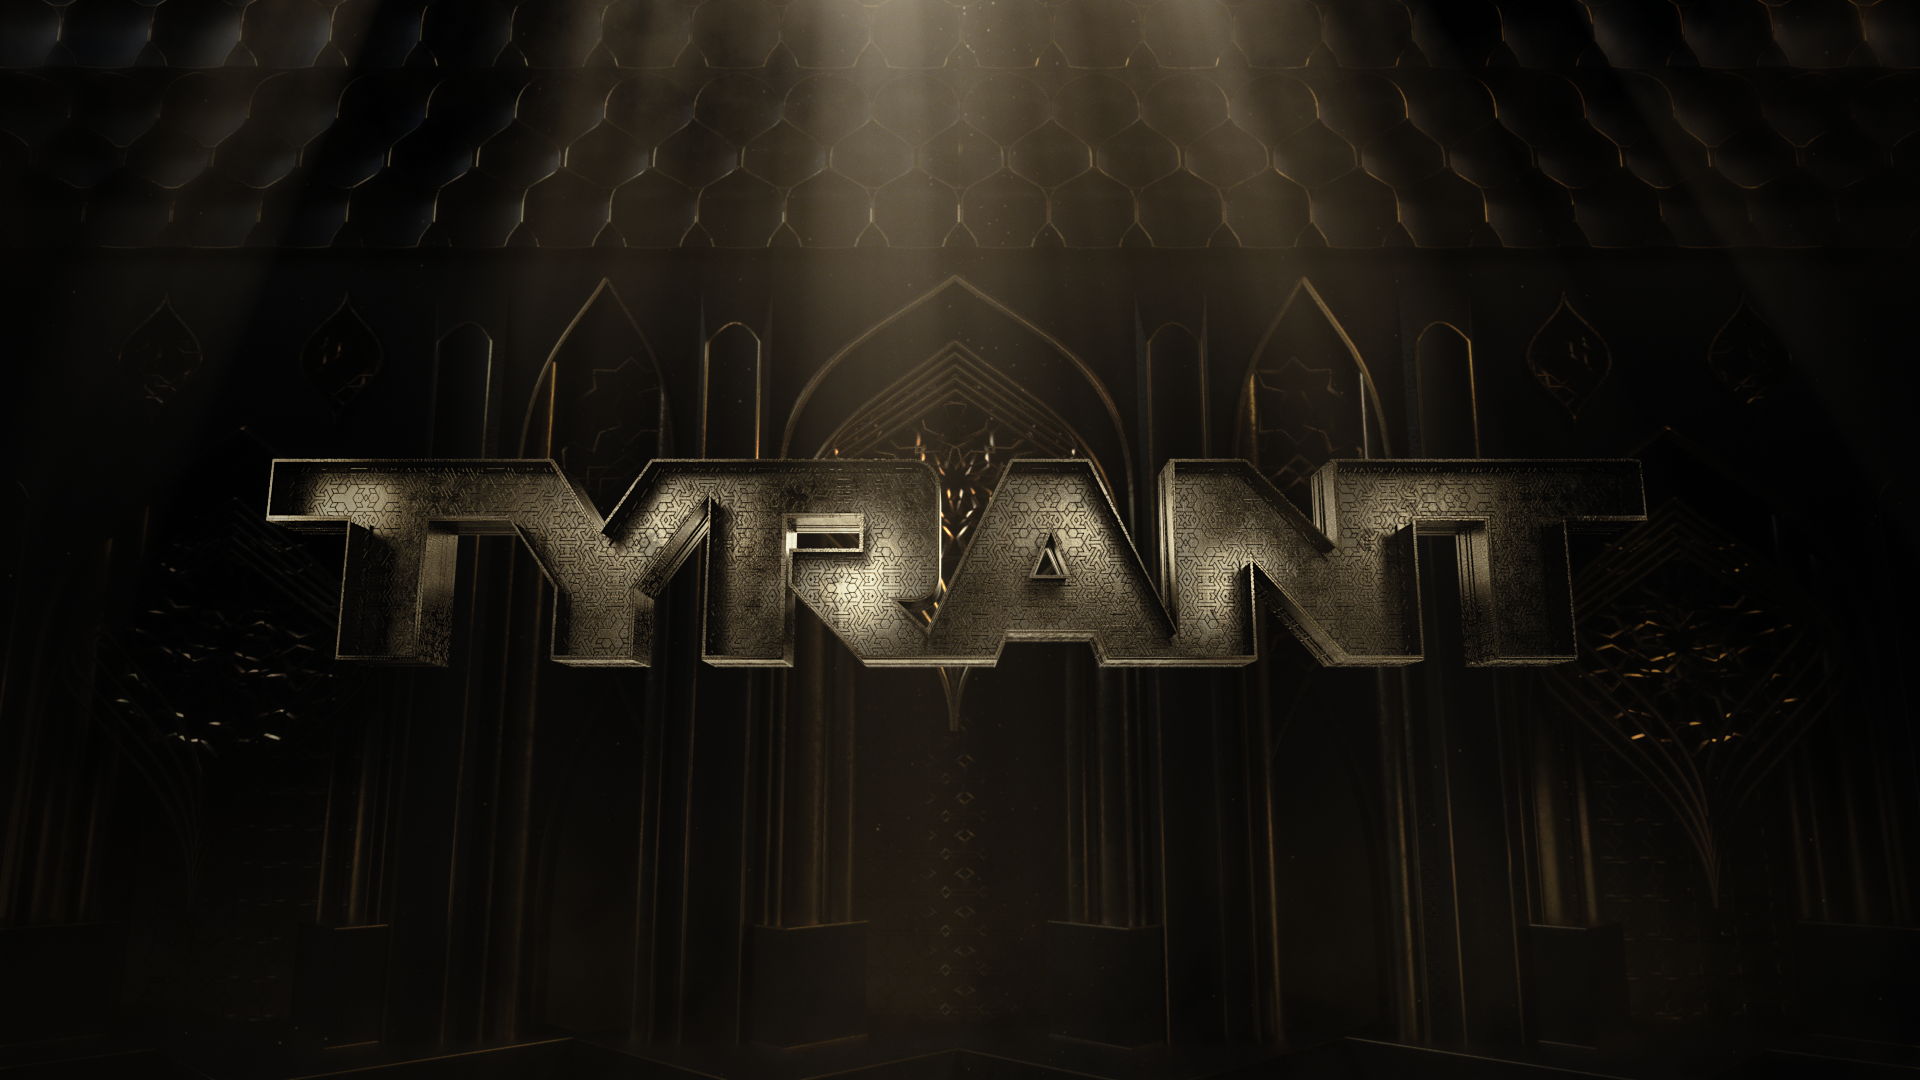 PP_TYRANT_TITLES_SH05_001_0119 (0-00-00-02).png